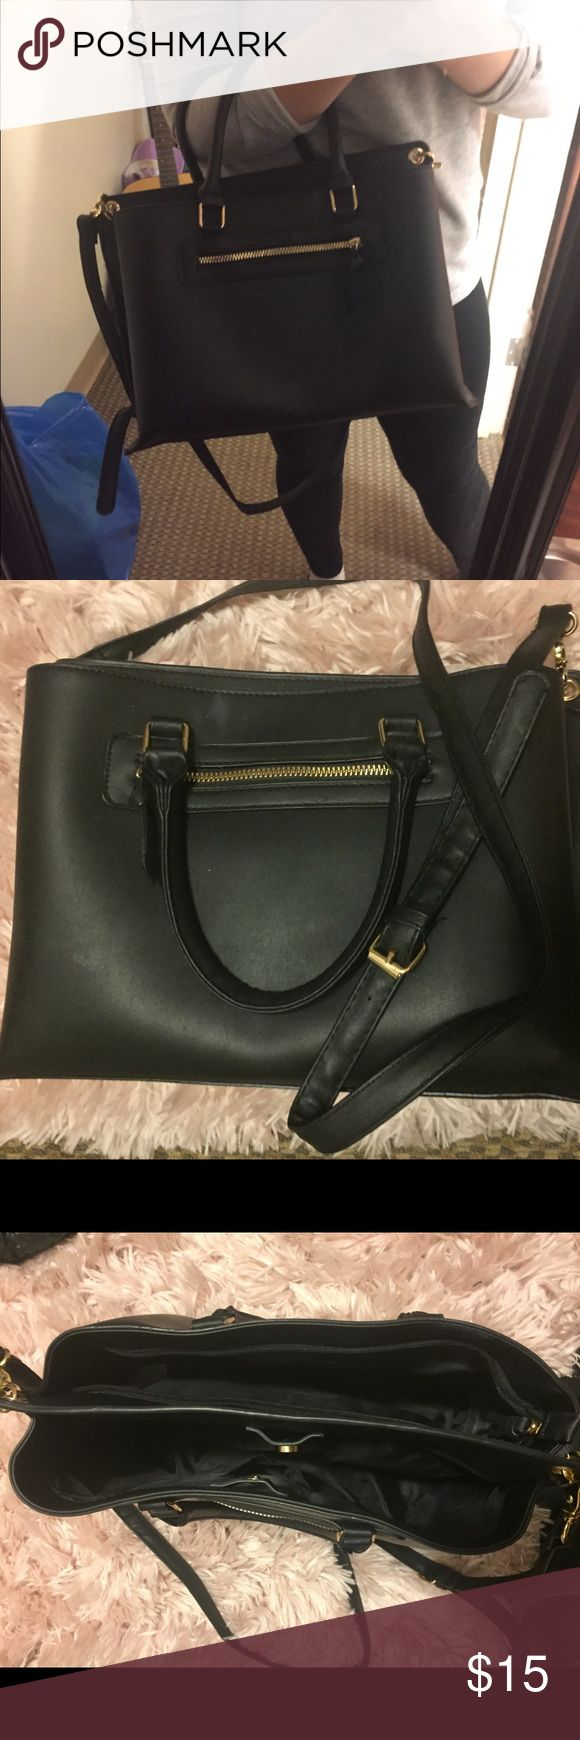 Large Black Purse Very firm, not flimsy at all! Very large and can hold all your things! Has a long strap as well. Primark Bags Totes